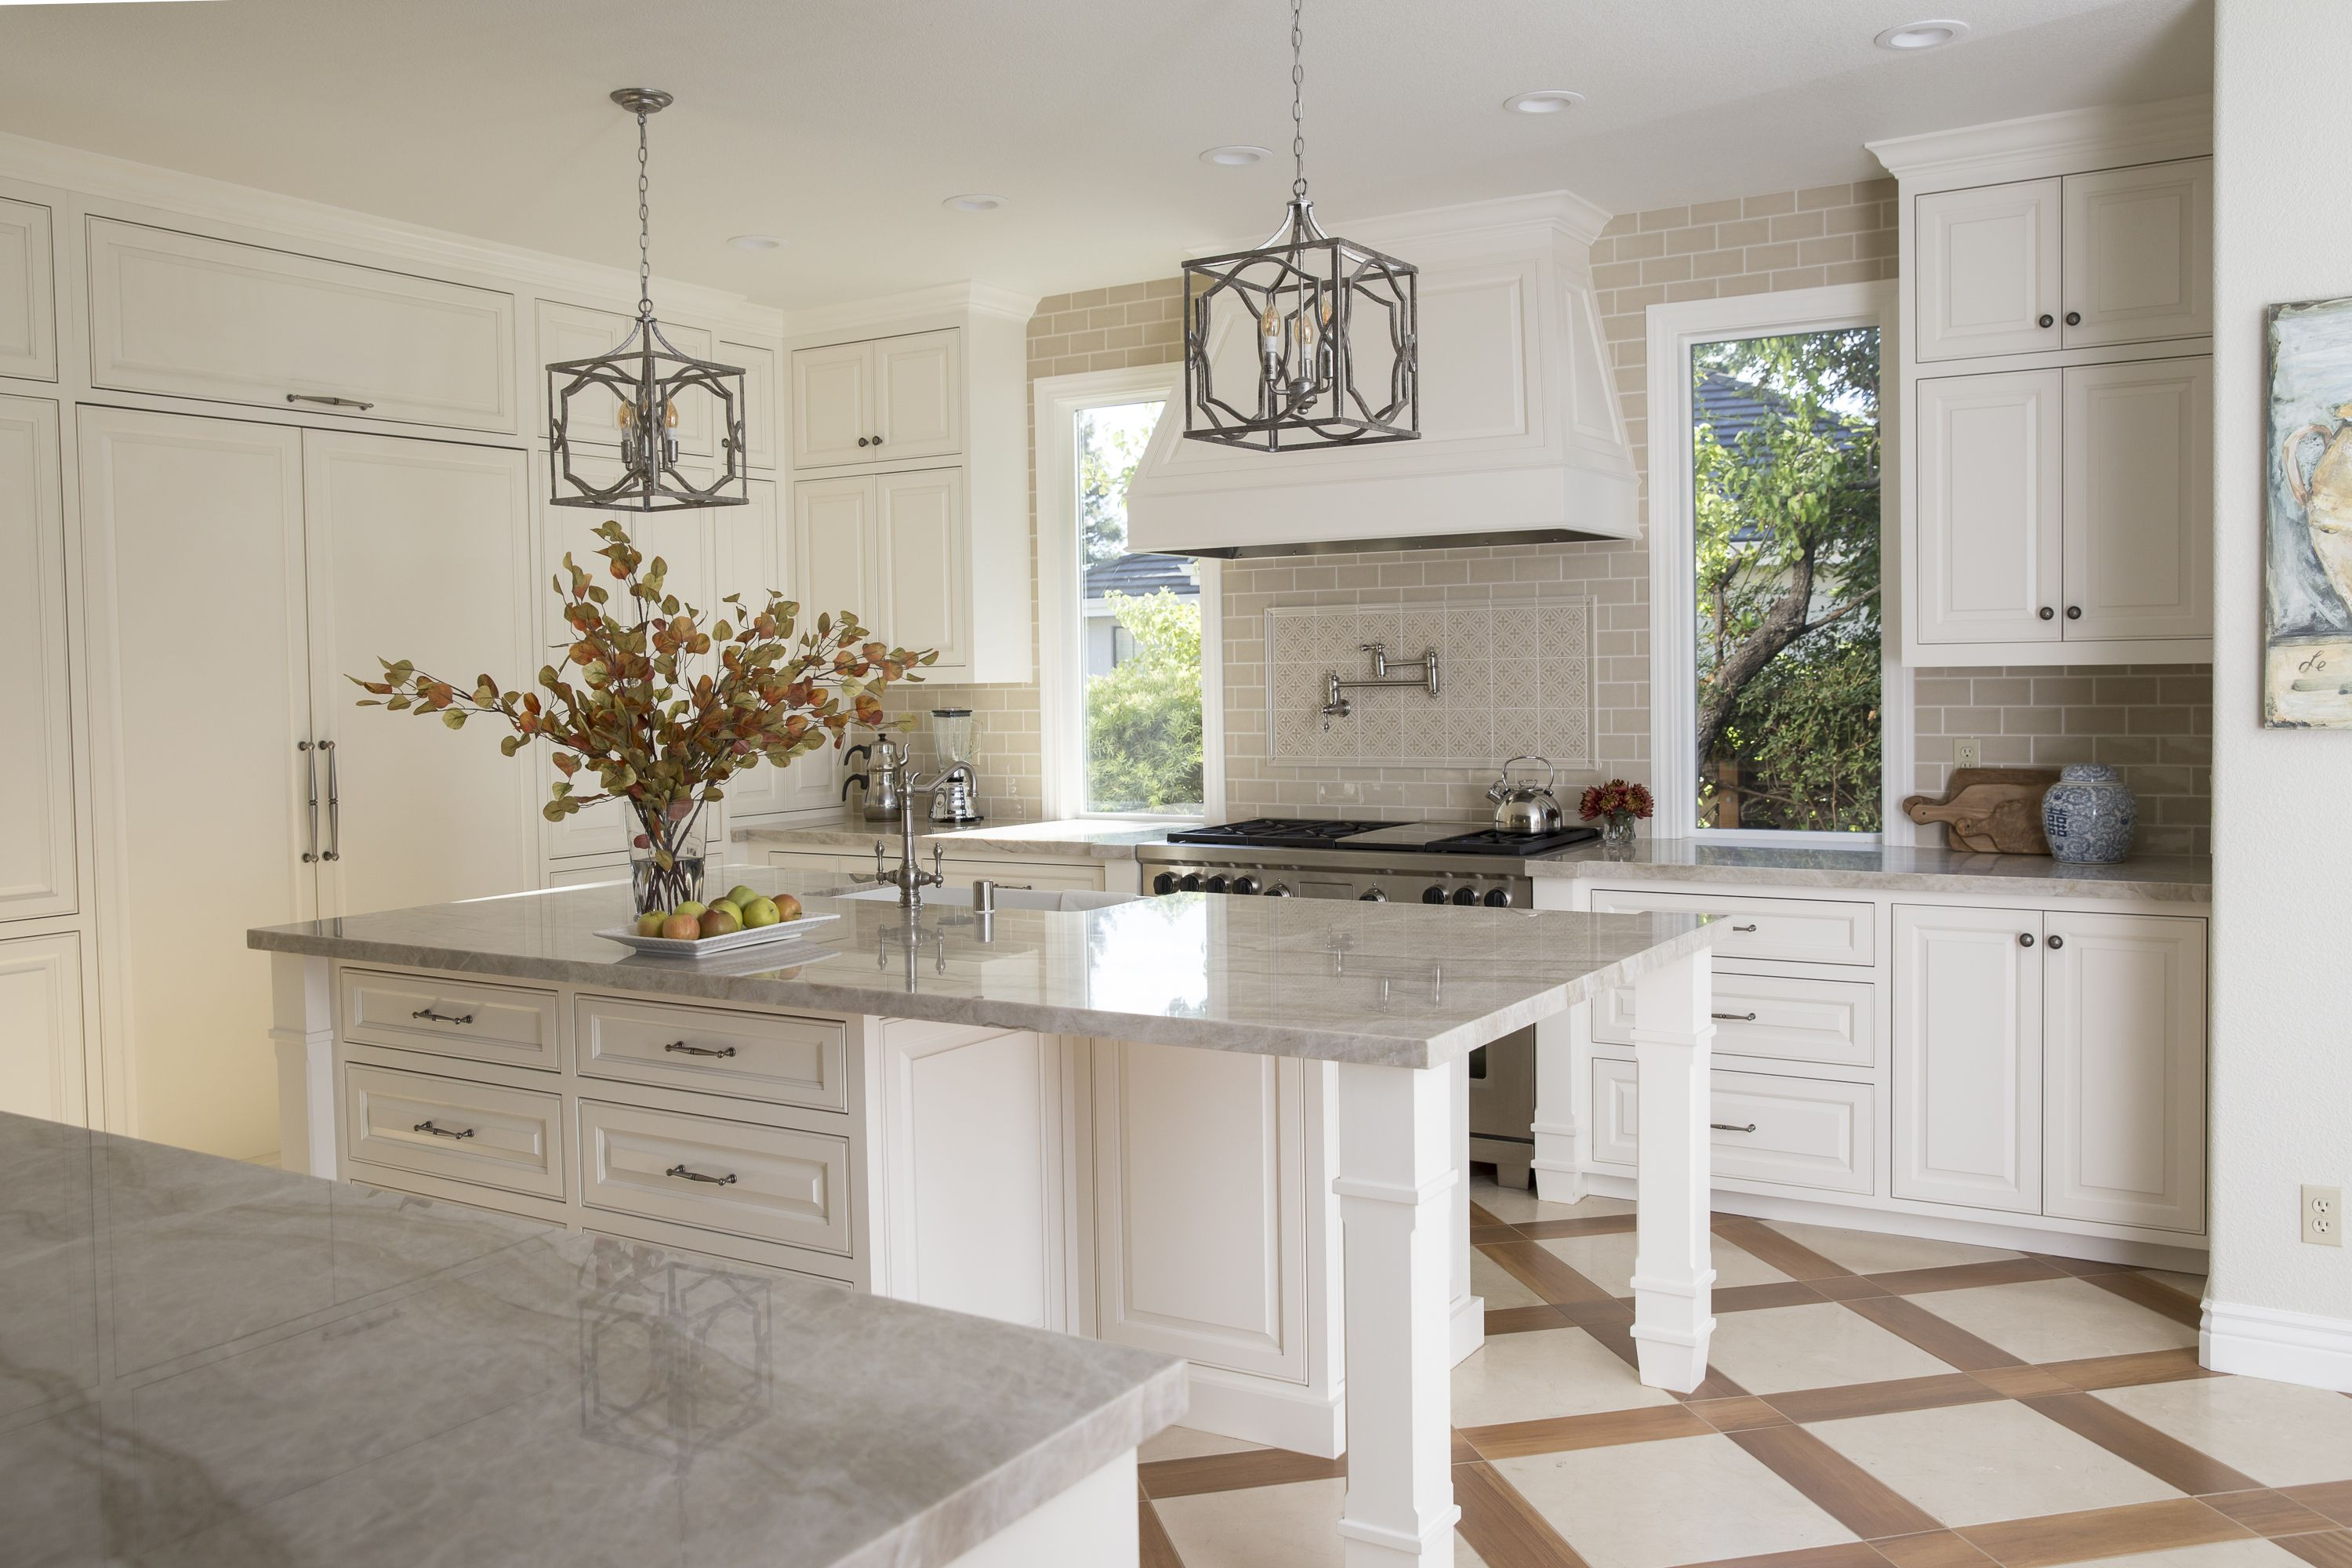 Kitchen Remodel White Cabinets Inlaid Marble Floors Design By Nicole Duttera Of Revival Market Kitchen Remodel Floor Design Kitchen Flooring